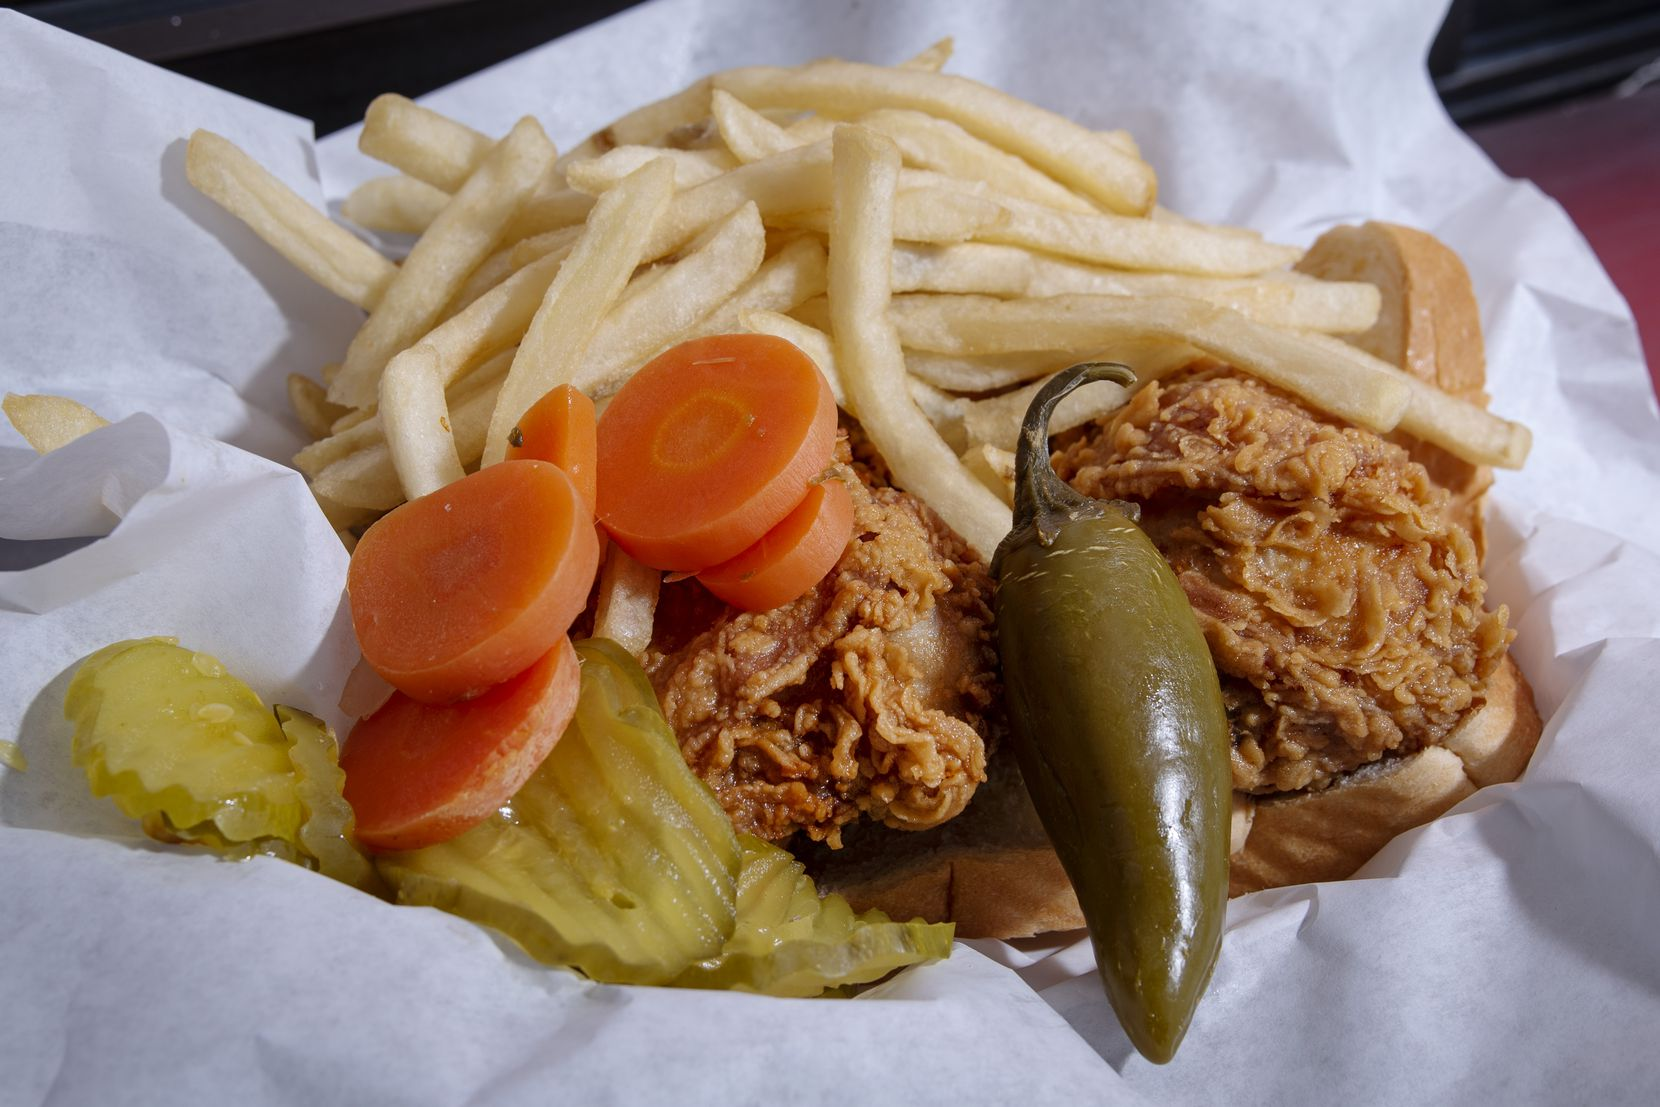 A two-piece dark chicken platter served with fries, pickles, carrots and a jalapeño from Hall's Honey Fried Chicken on West Camp Wisdom Road in Dallas